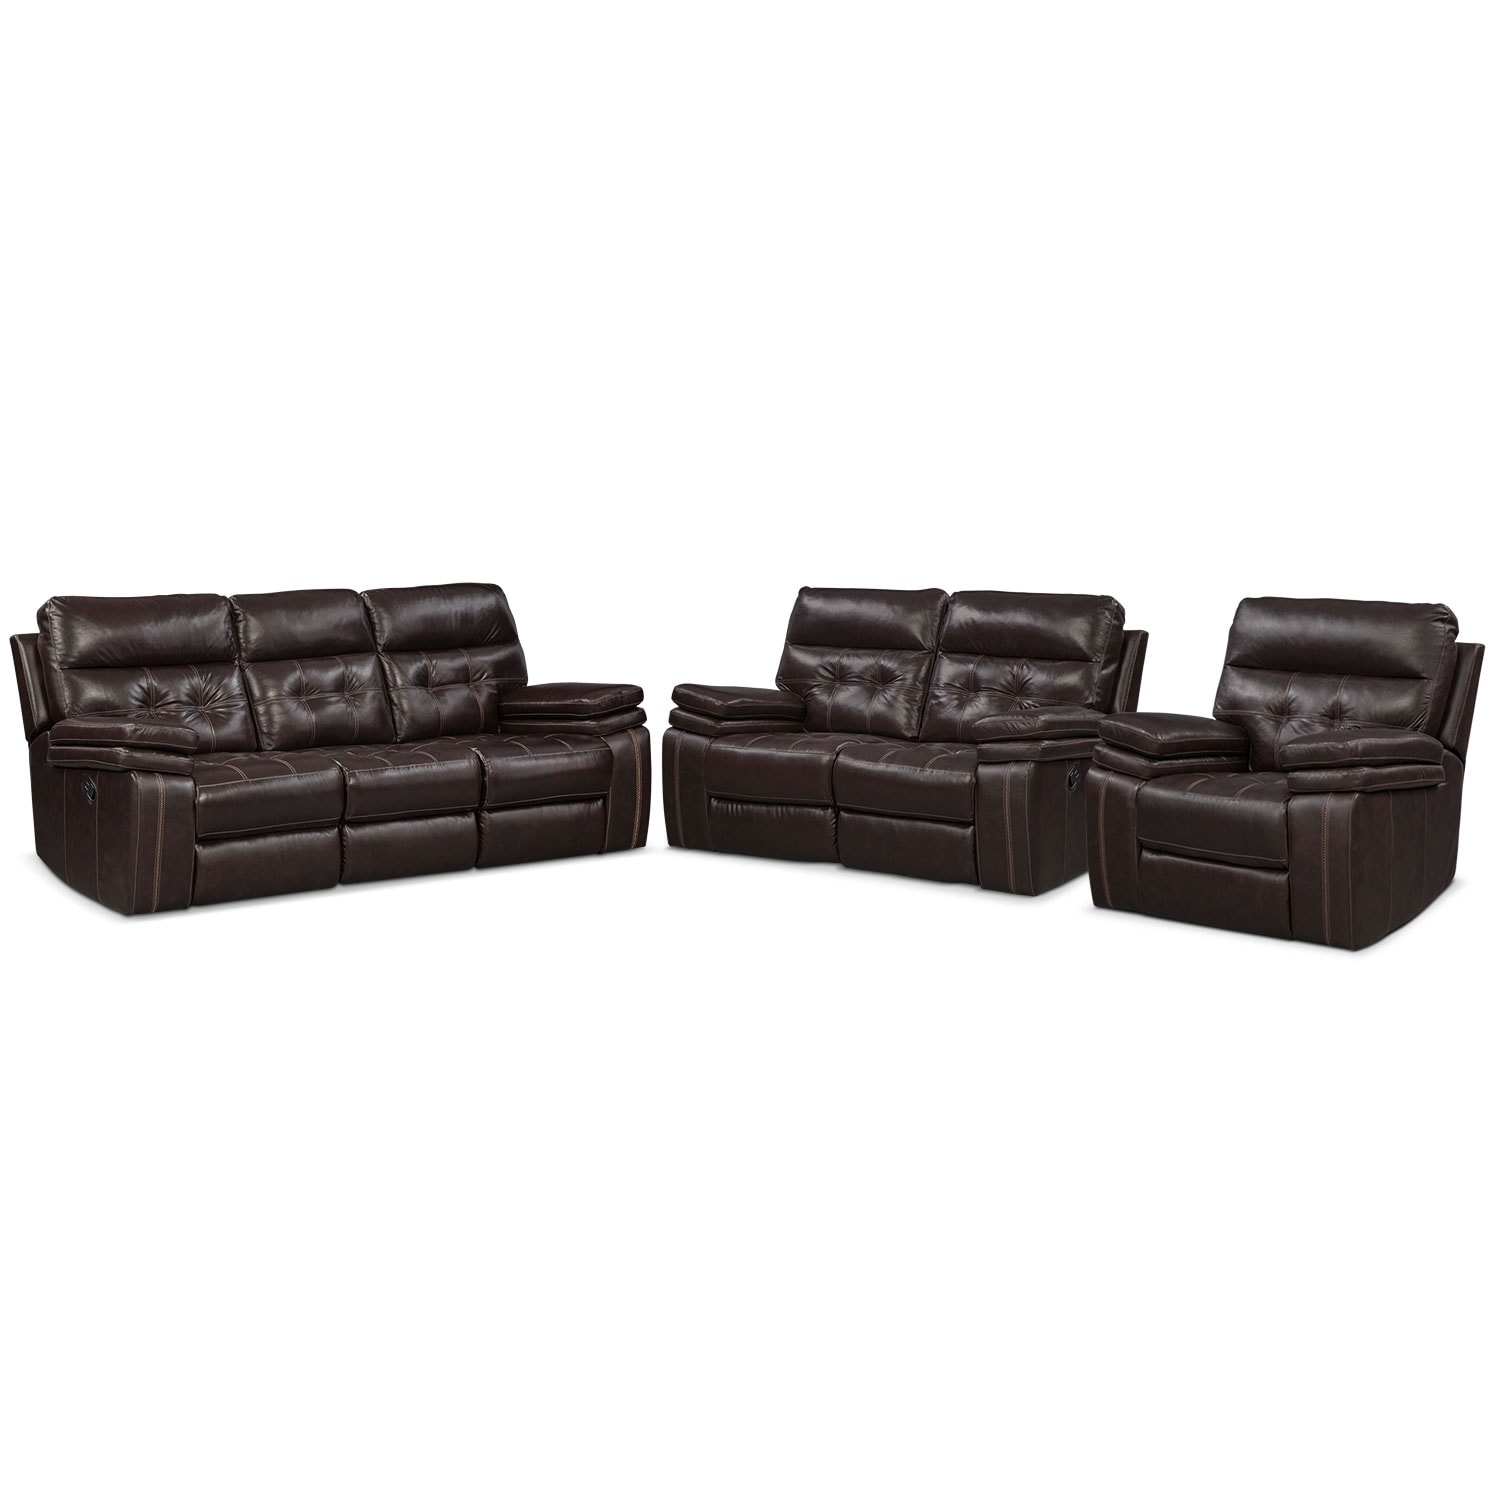 Living Room Furniture - Brisco Manual Reclining Sofa, Loveseat, and Recliner Set